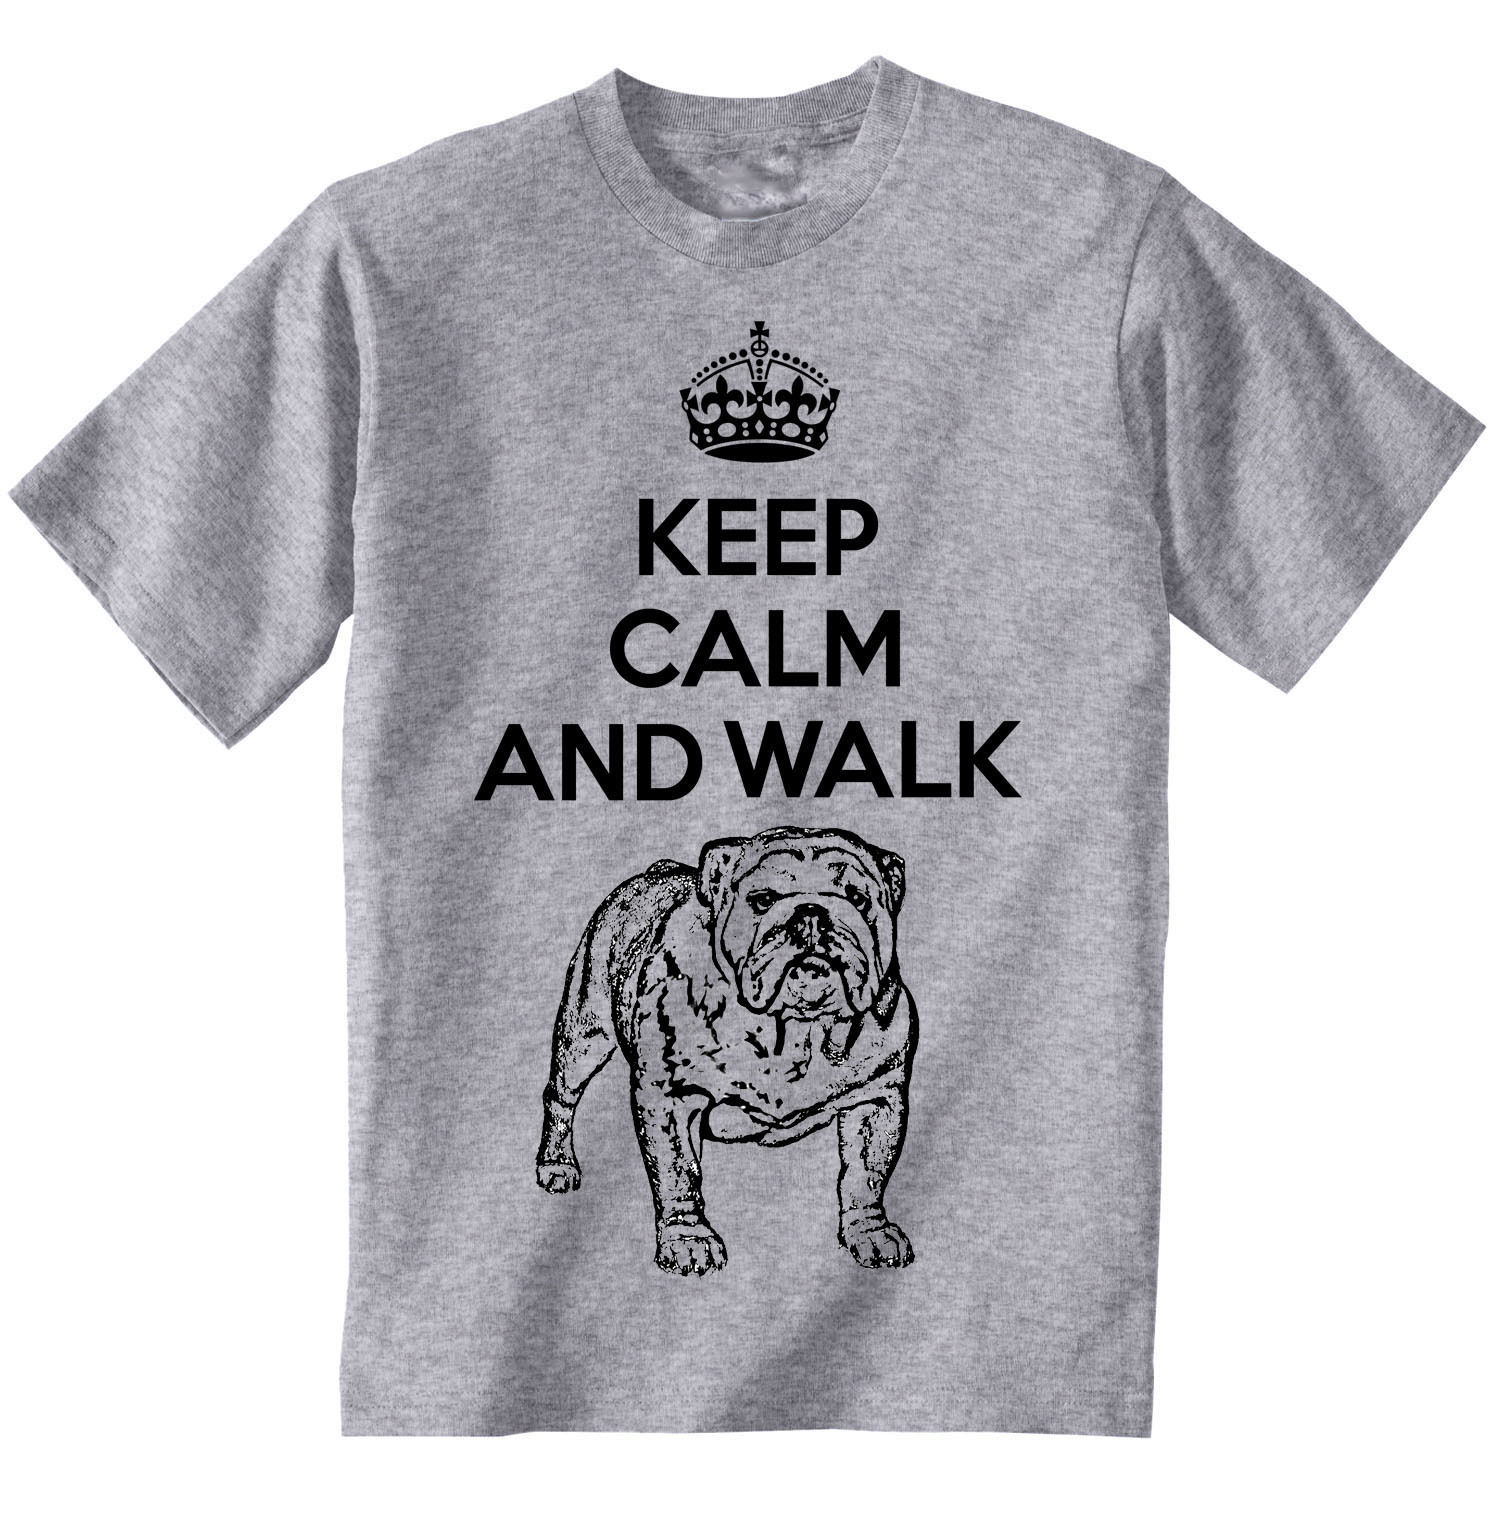 Primary image for KEEP CALM AND WALK THE BRITISH BULLDOG - NEW GRAPHIC GREY TSHIRT- S-M-L-XL-XXL